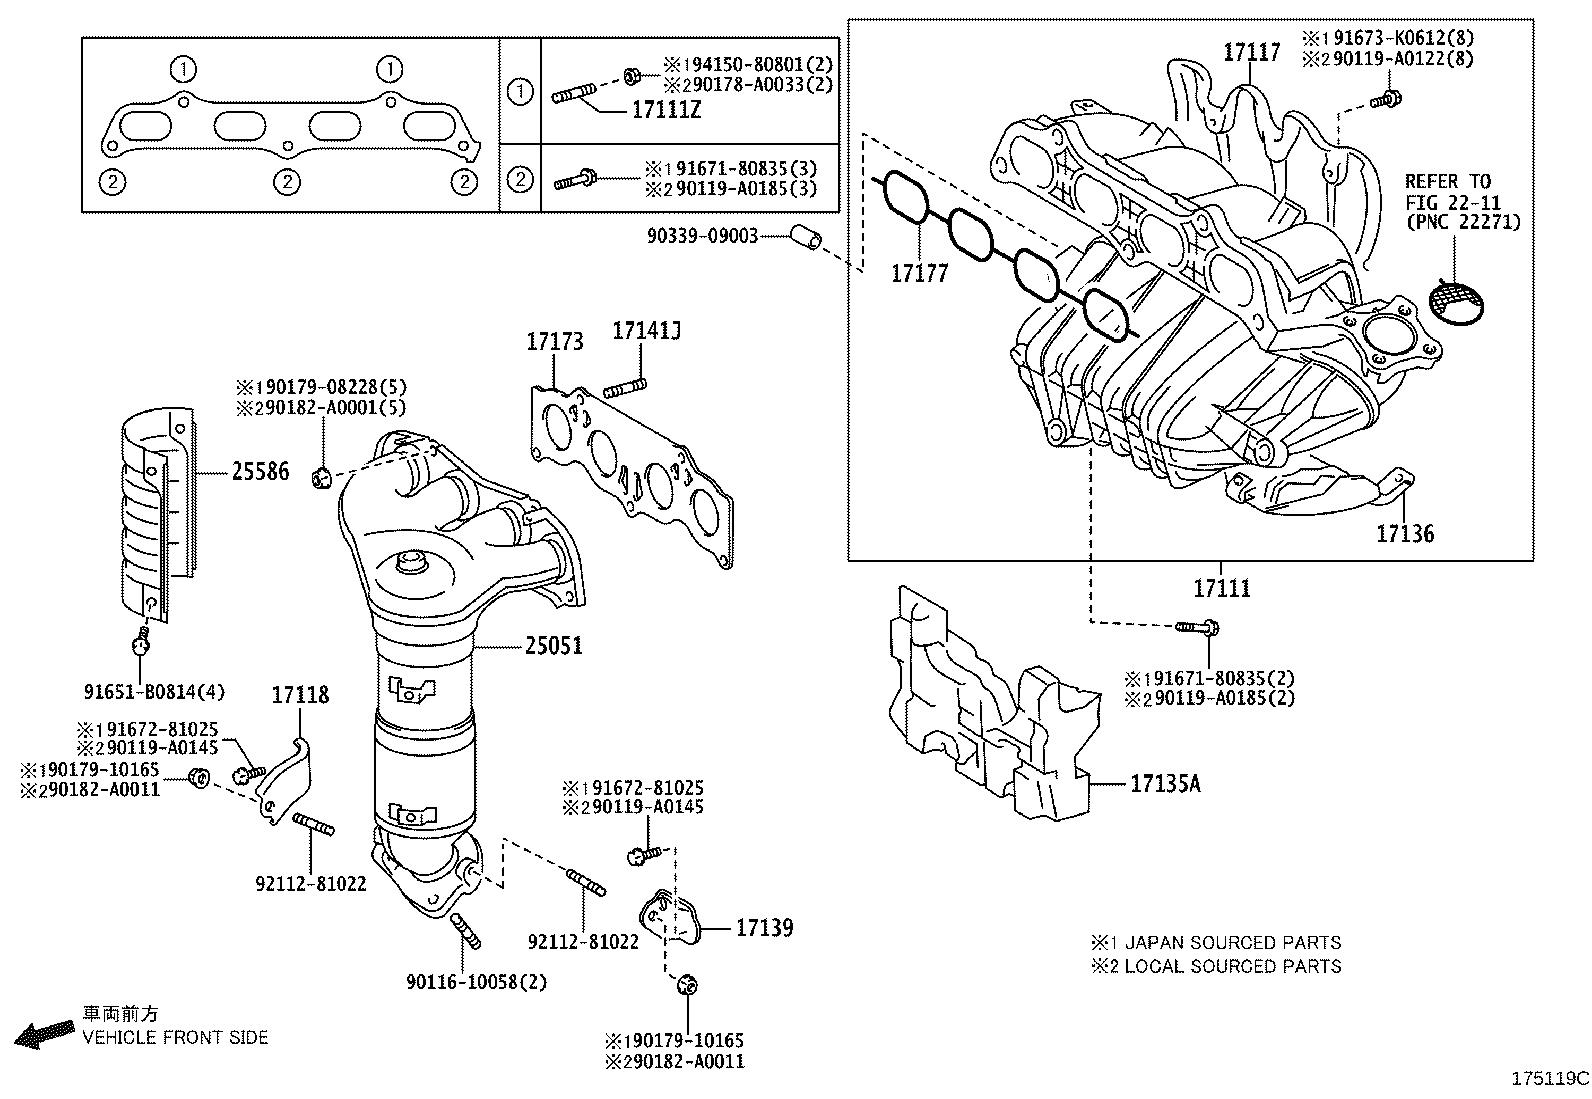 Toyota Camry Stay Manifold Exhaust Engine